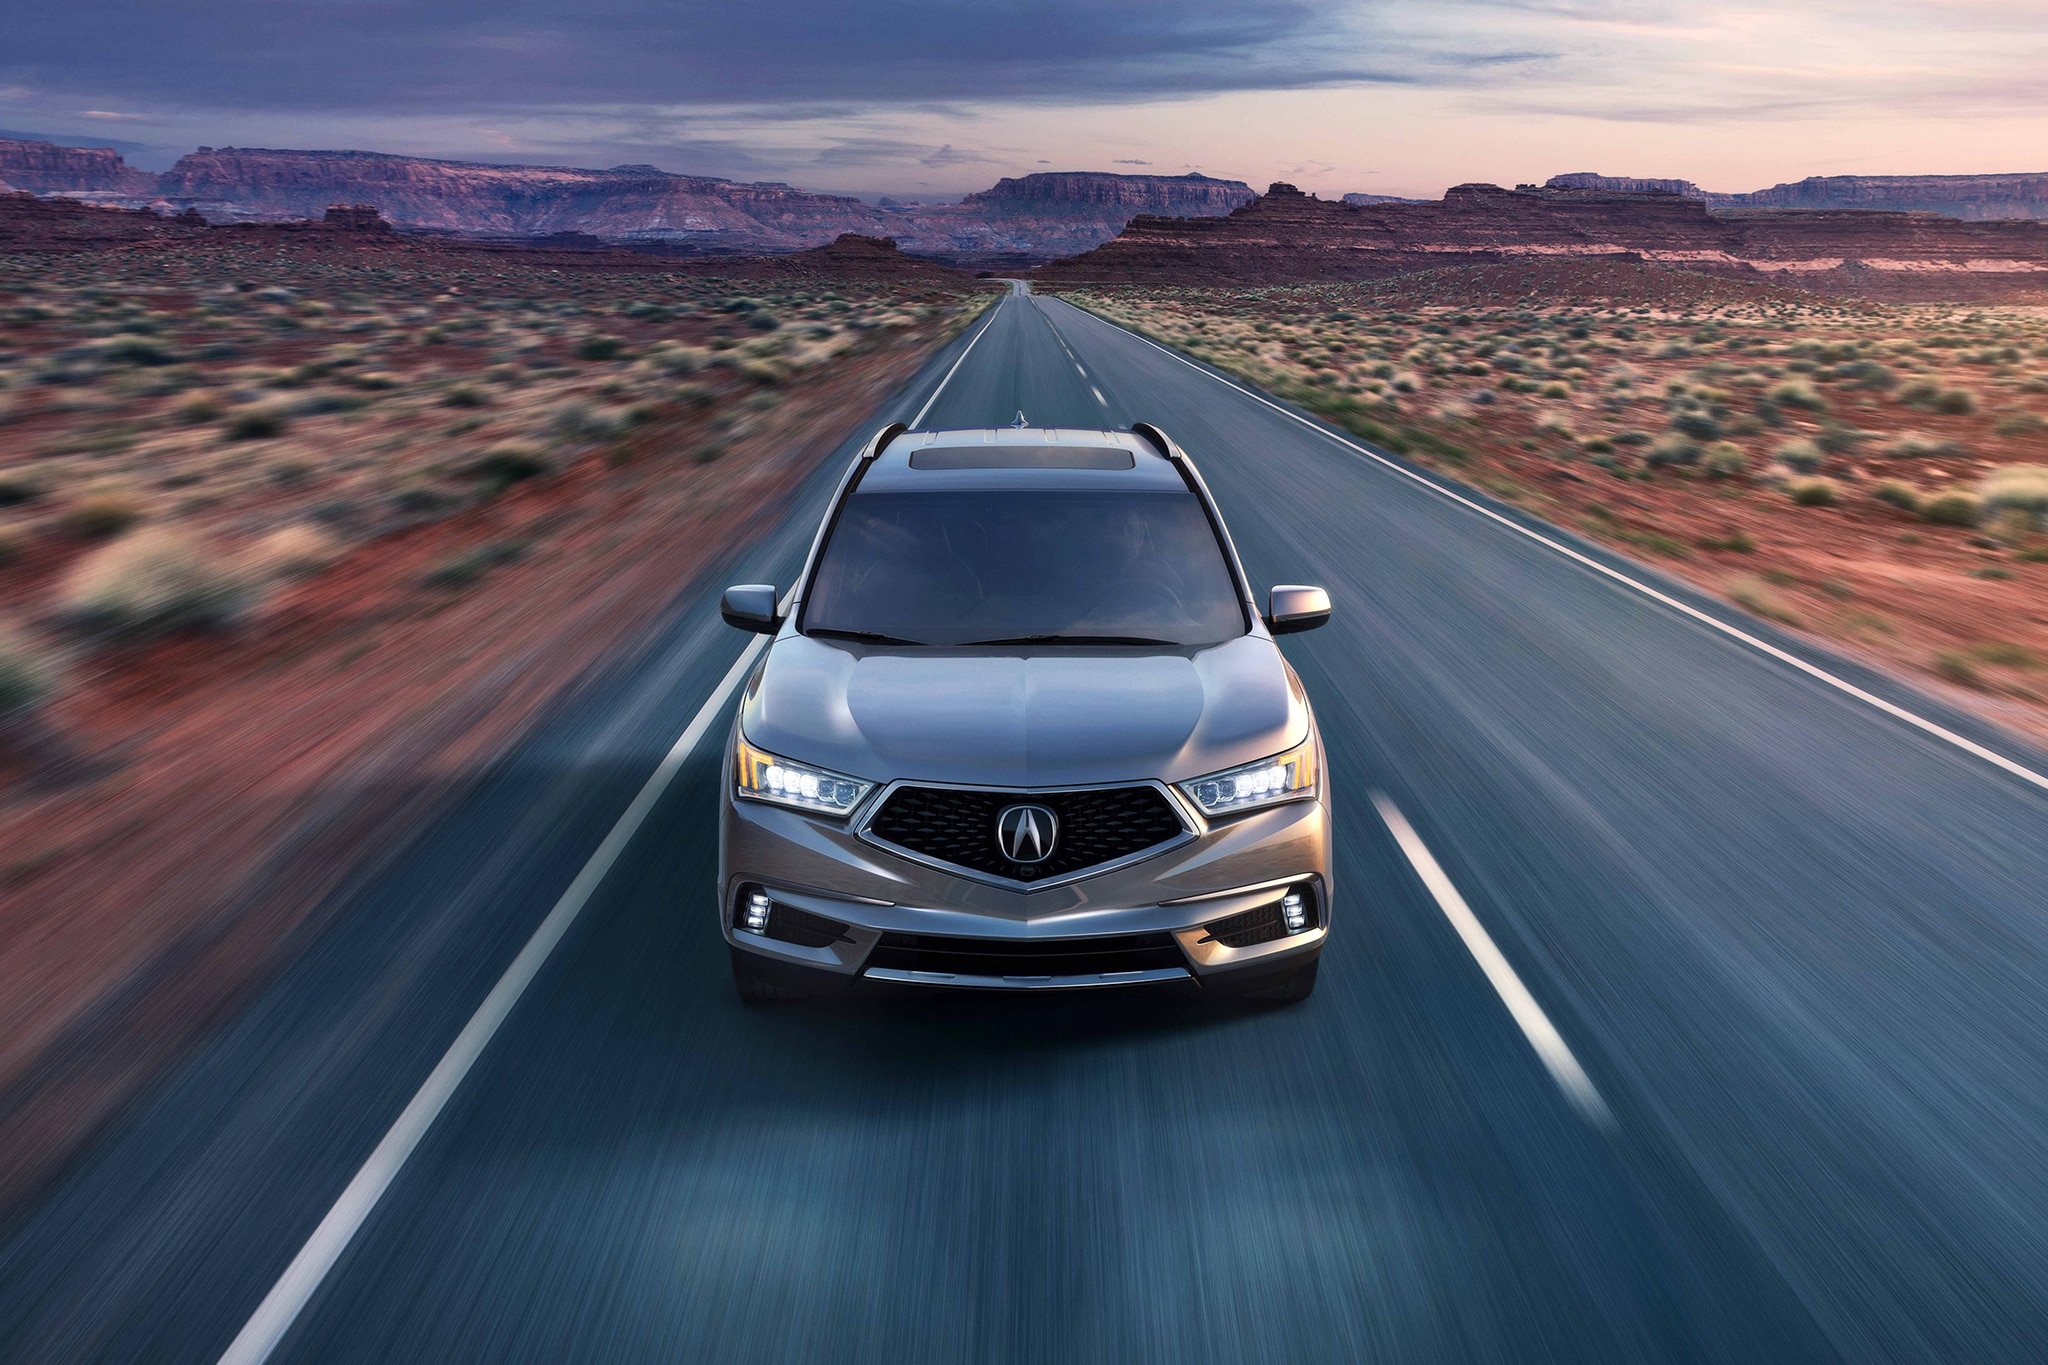 2017 Acura MDX Front View In Motion